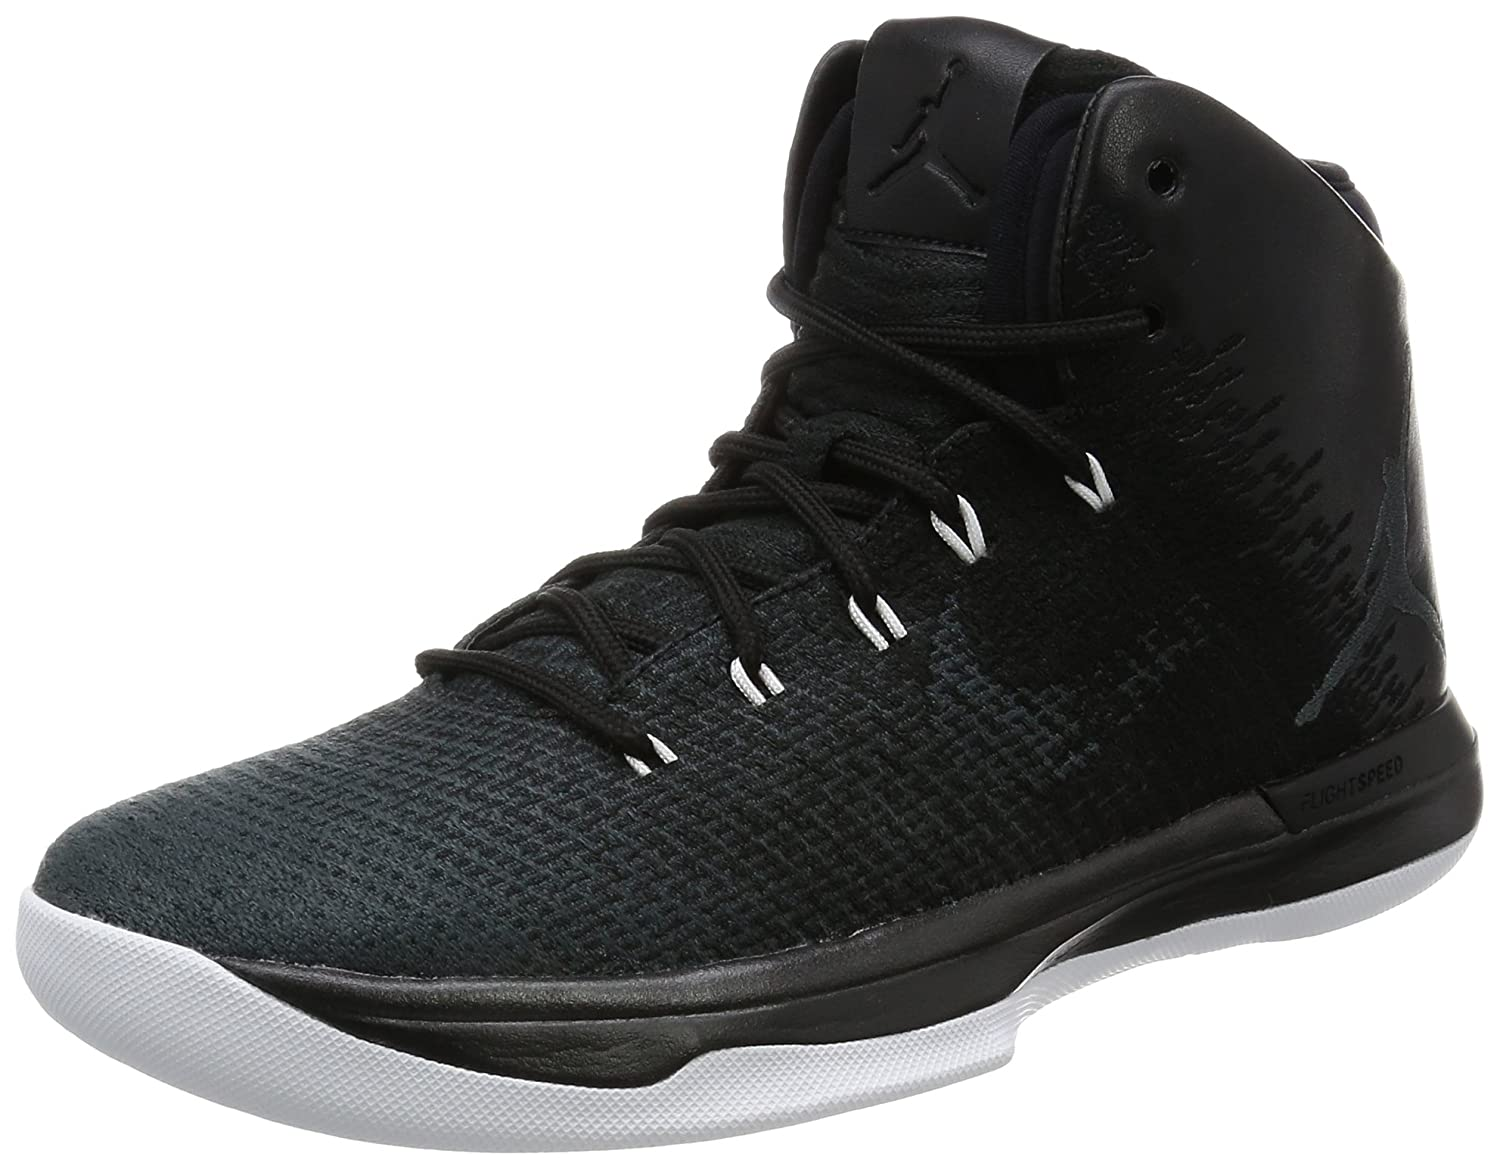 new arrival 77f1d 8b6b5 Amazon.com   Jordan Nike Air XXXI Mens Basketball Shoes   Basketball